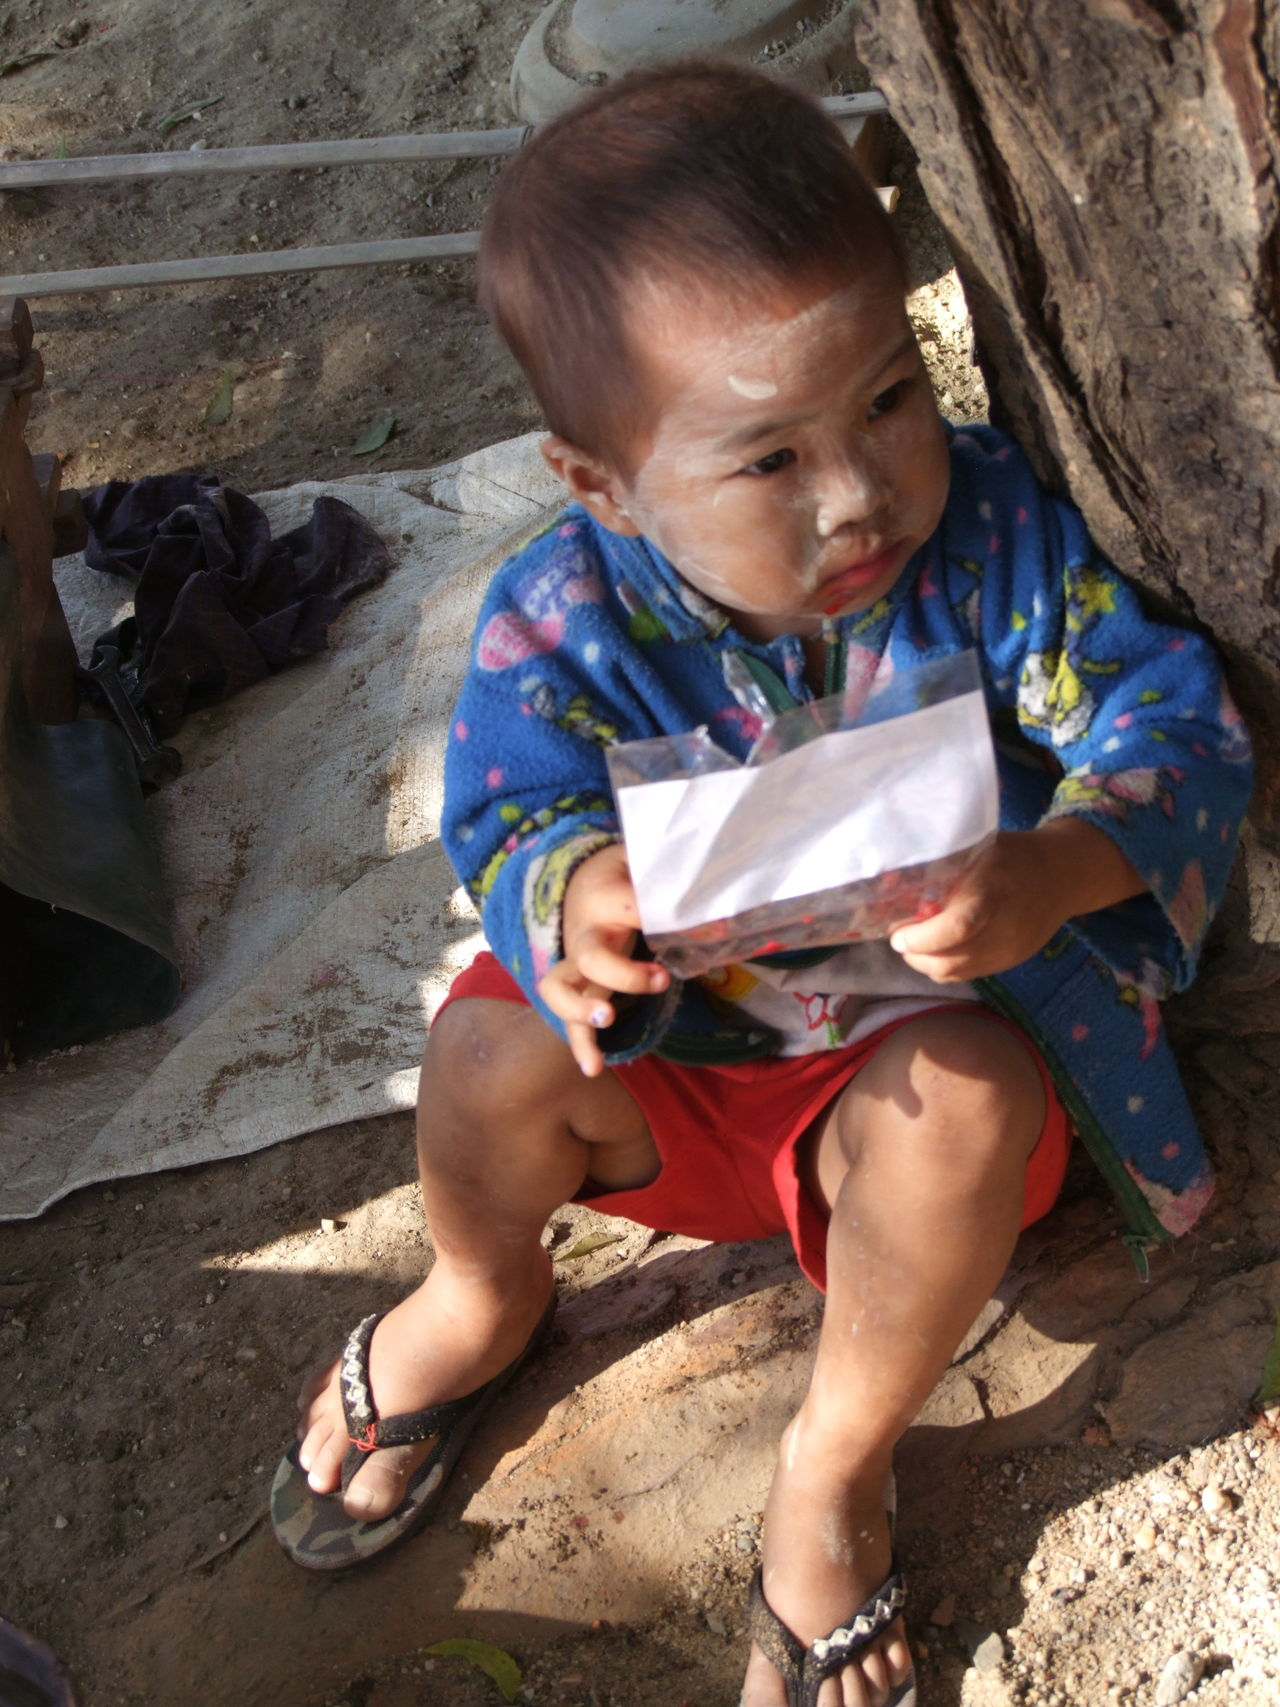 Child in Pakokku Village Boy Boy Portrait Buddhist Culture Child Composition Full Frame Holding Paper Looking Away From Camera Myanmar No Incidental People One Person Outdoor Photography Pakokku Portrait Red And Blue Colour Sitting Sunlight And Shade Traditional Clothing